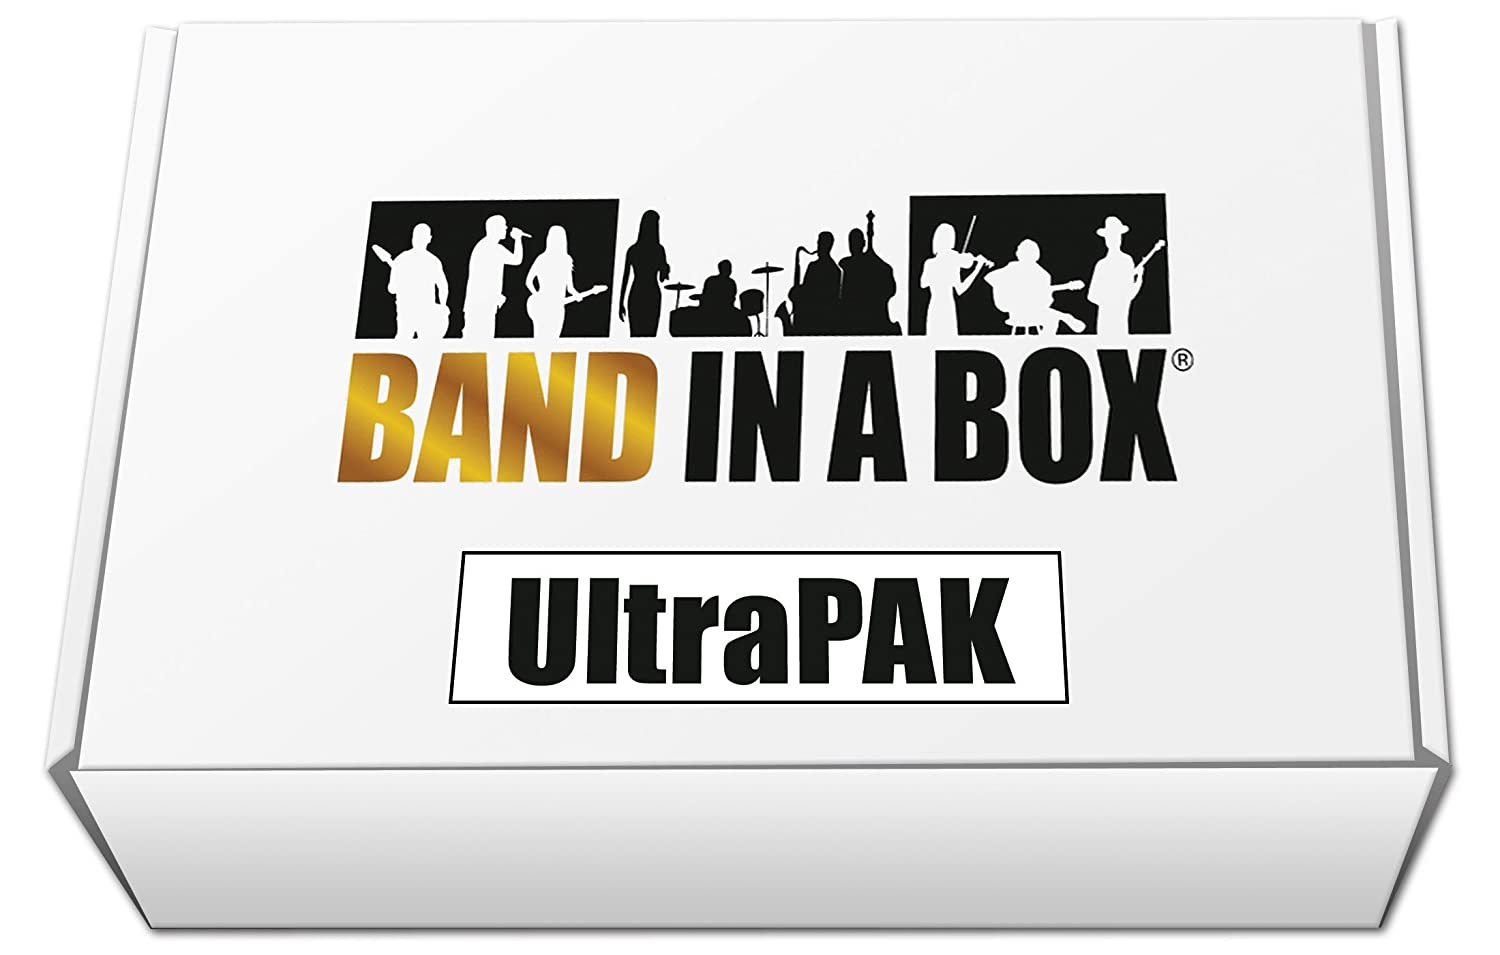 Band-in-a-Box 2018 UltraPAK [Win USB Hard Drive] - Create your own backing tracks PG Music BBE80844